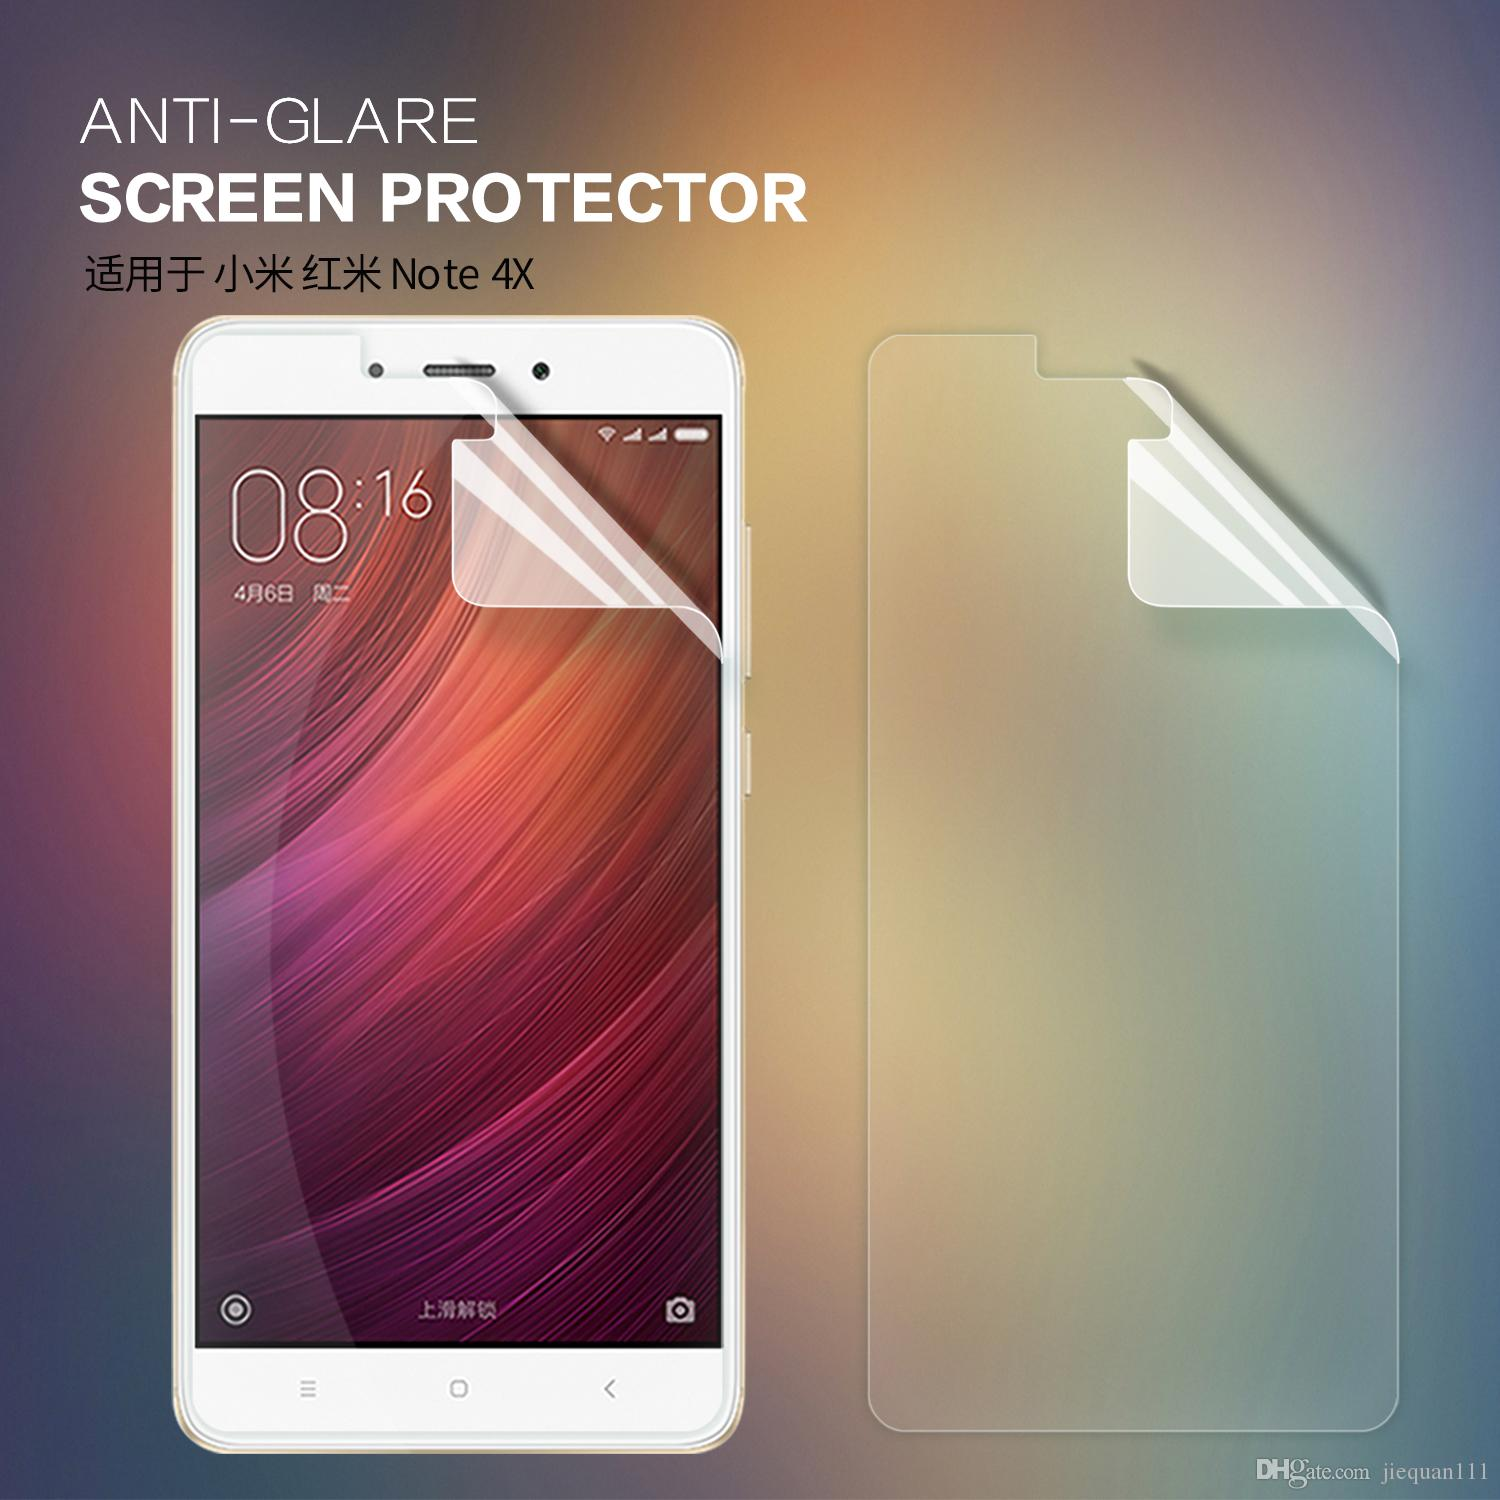 Xiaomi redmi note 4x screen protector nillkin anti glare matte xiaomi redmi note 4x screen protector nillkin anti glare matte protective film with retailed package cheap screen protector film screen protector from stopboris Images